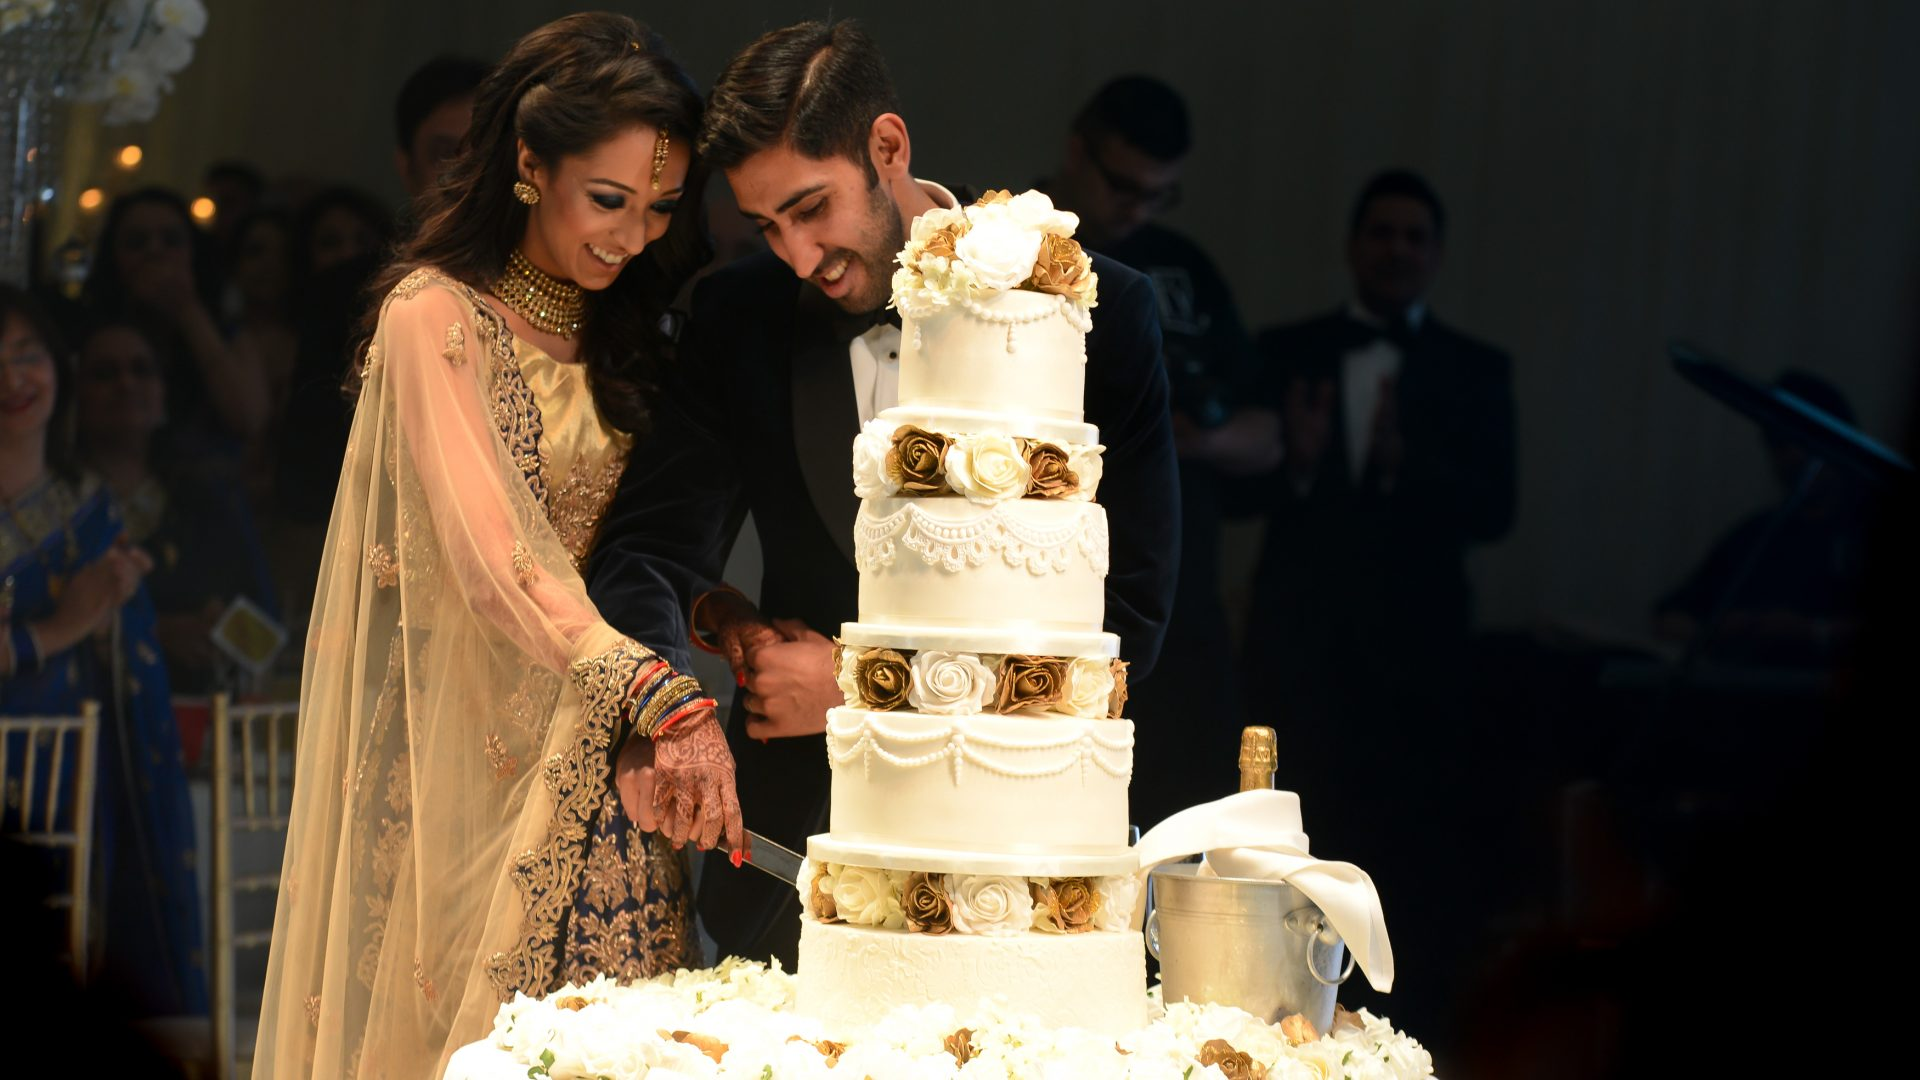 cake-cutting-asian-wedding-planner